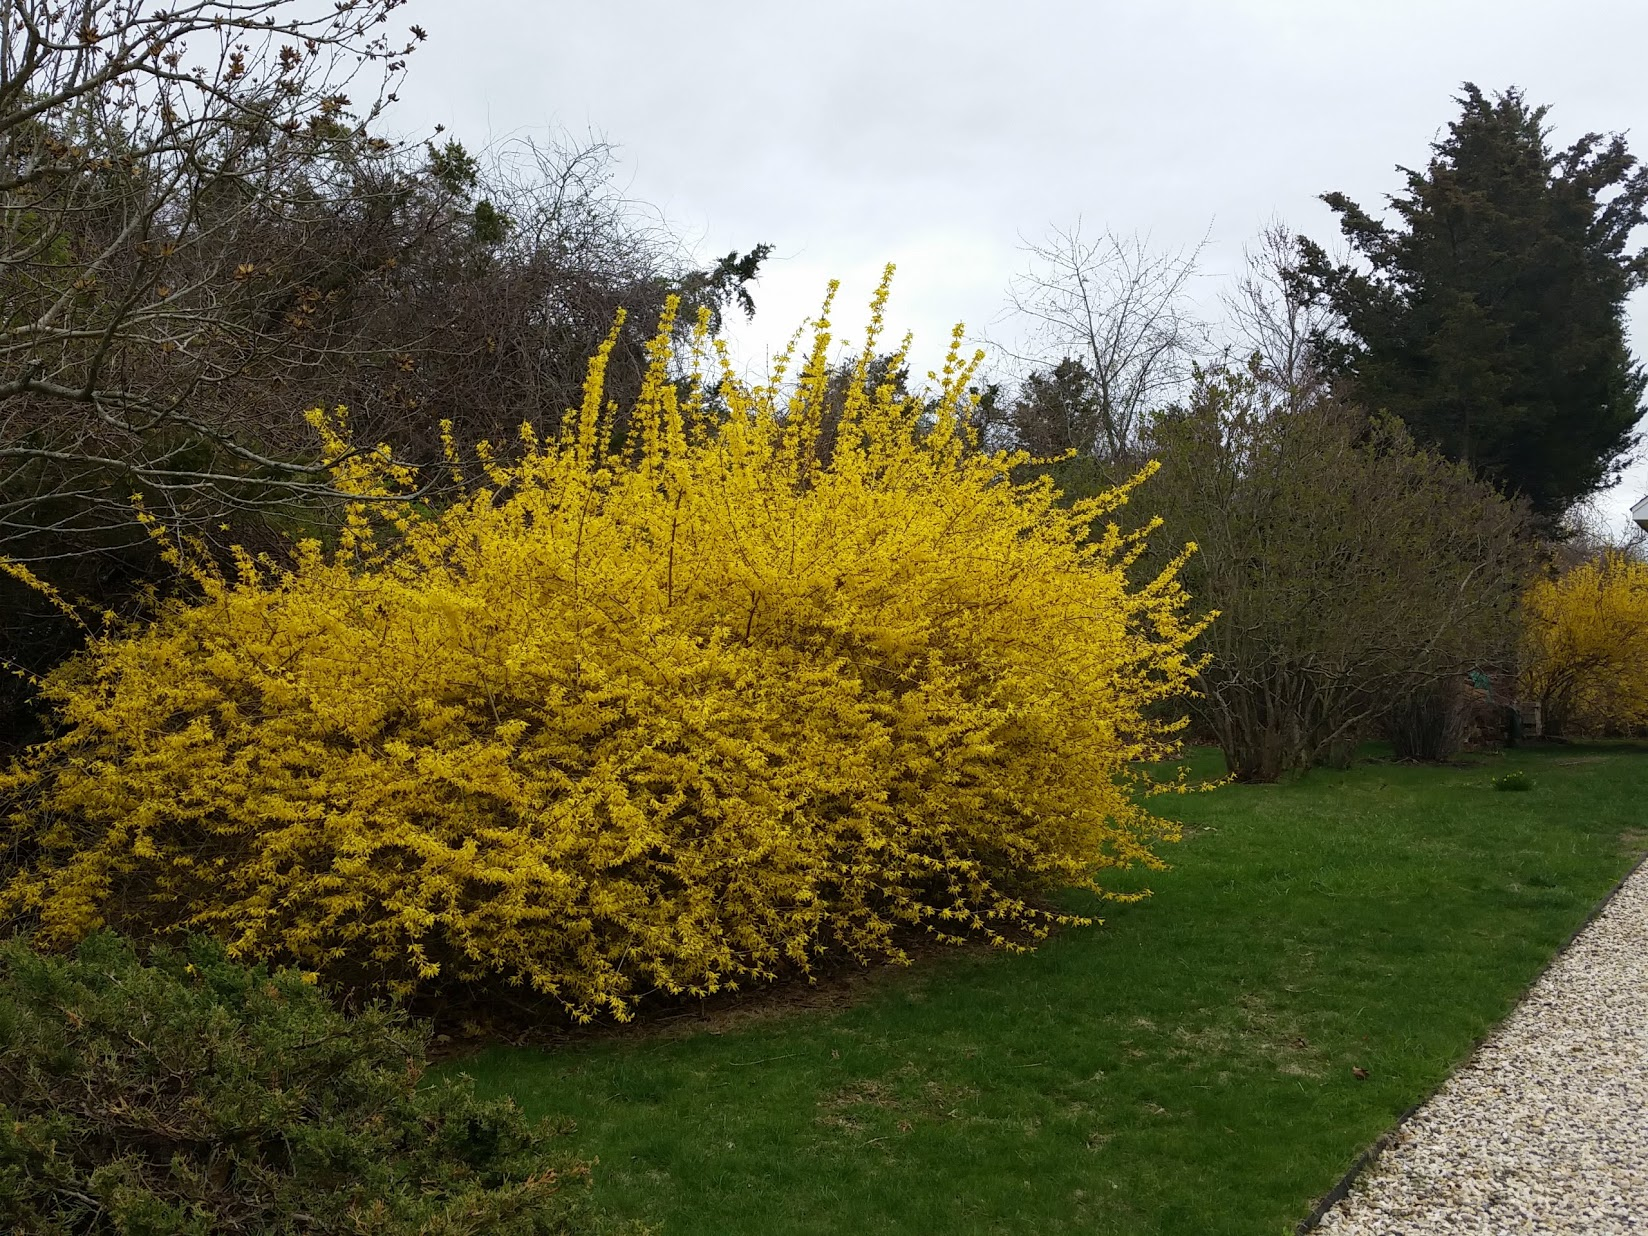 Forsythia in bloom with later-spring lilacs behind, Shelter Island, NY